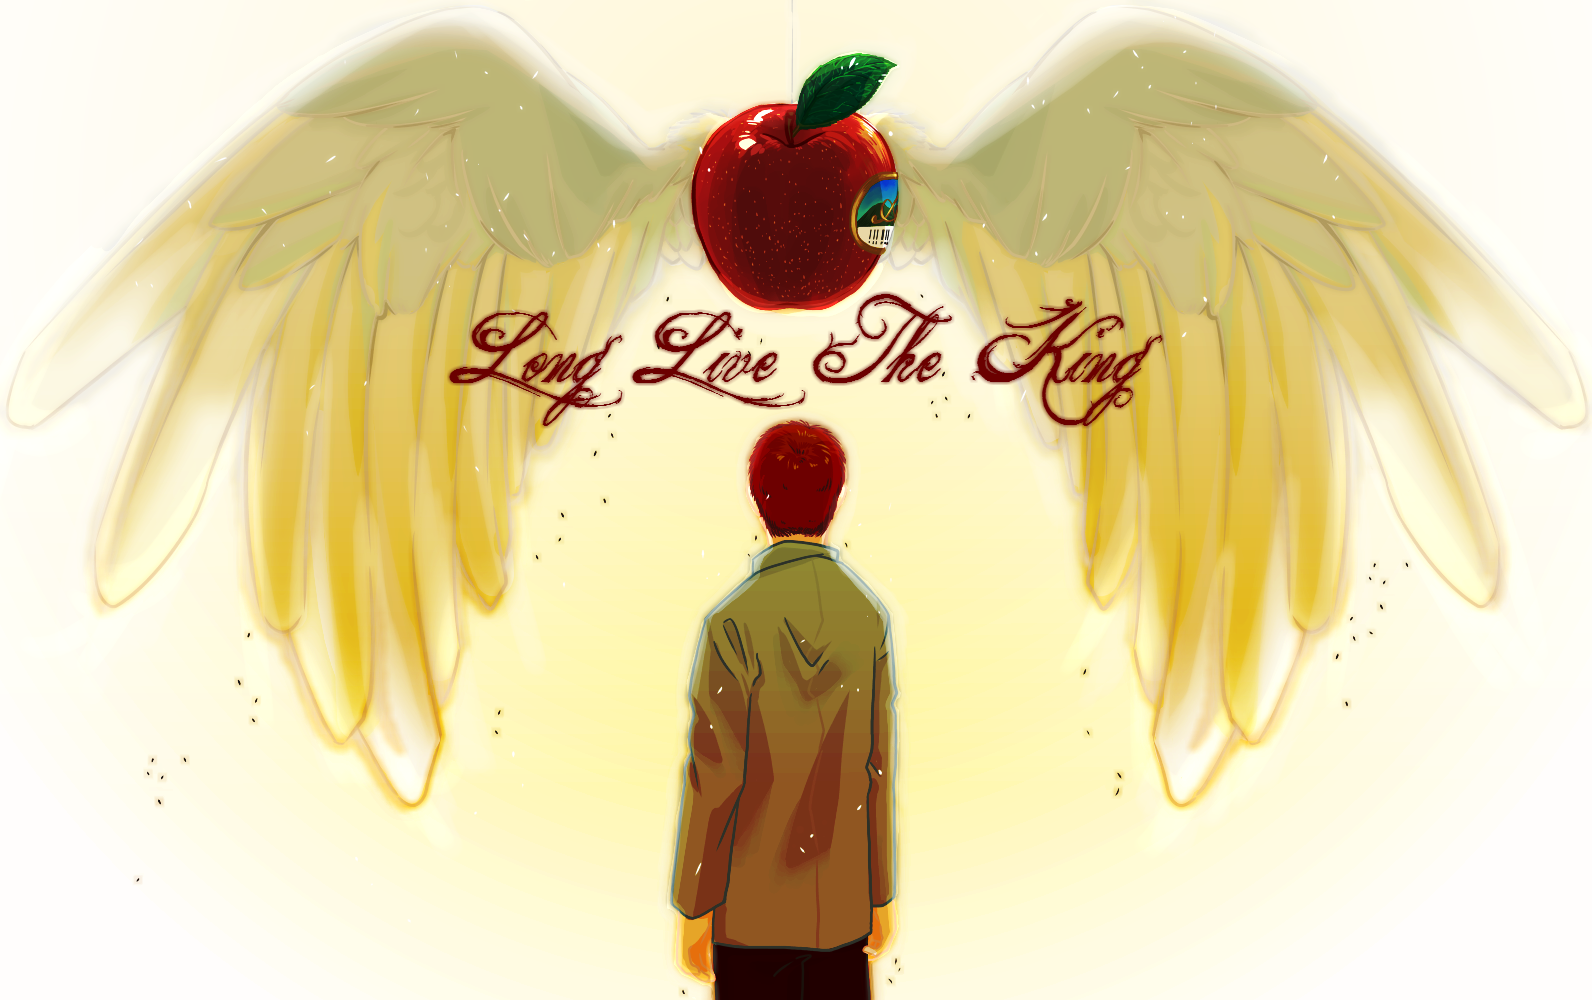 - Second Place: Long Live The Kingby surumerume